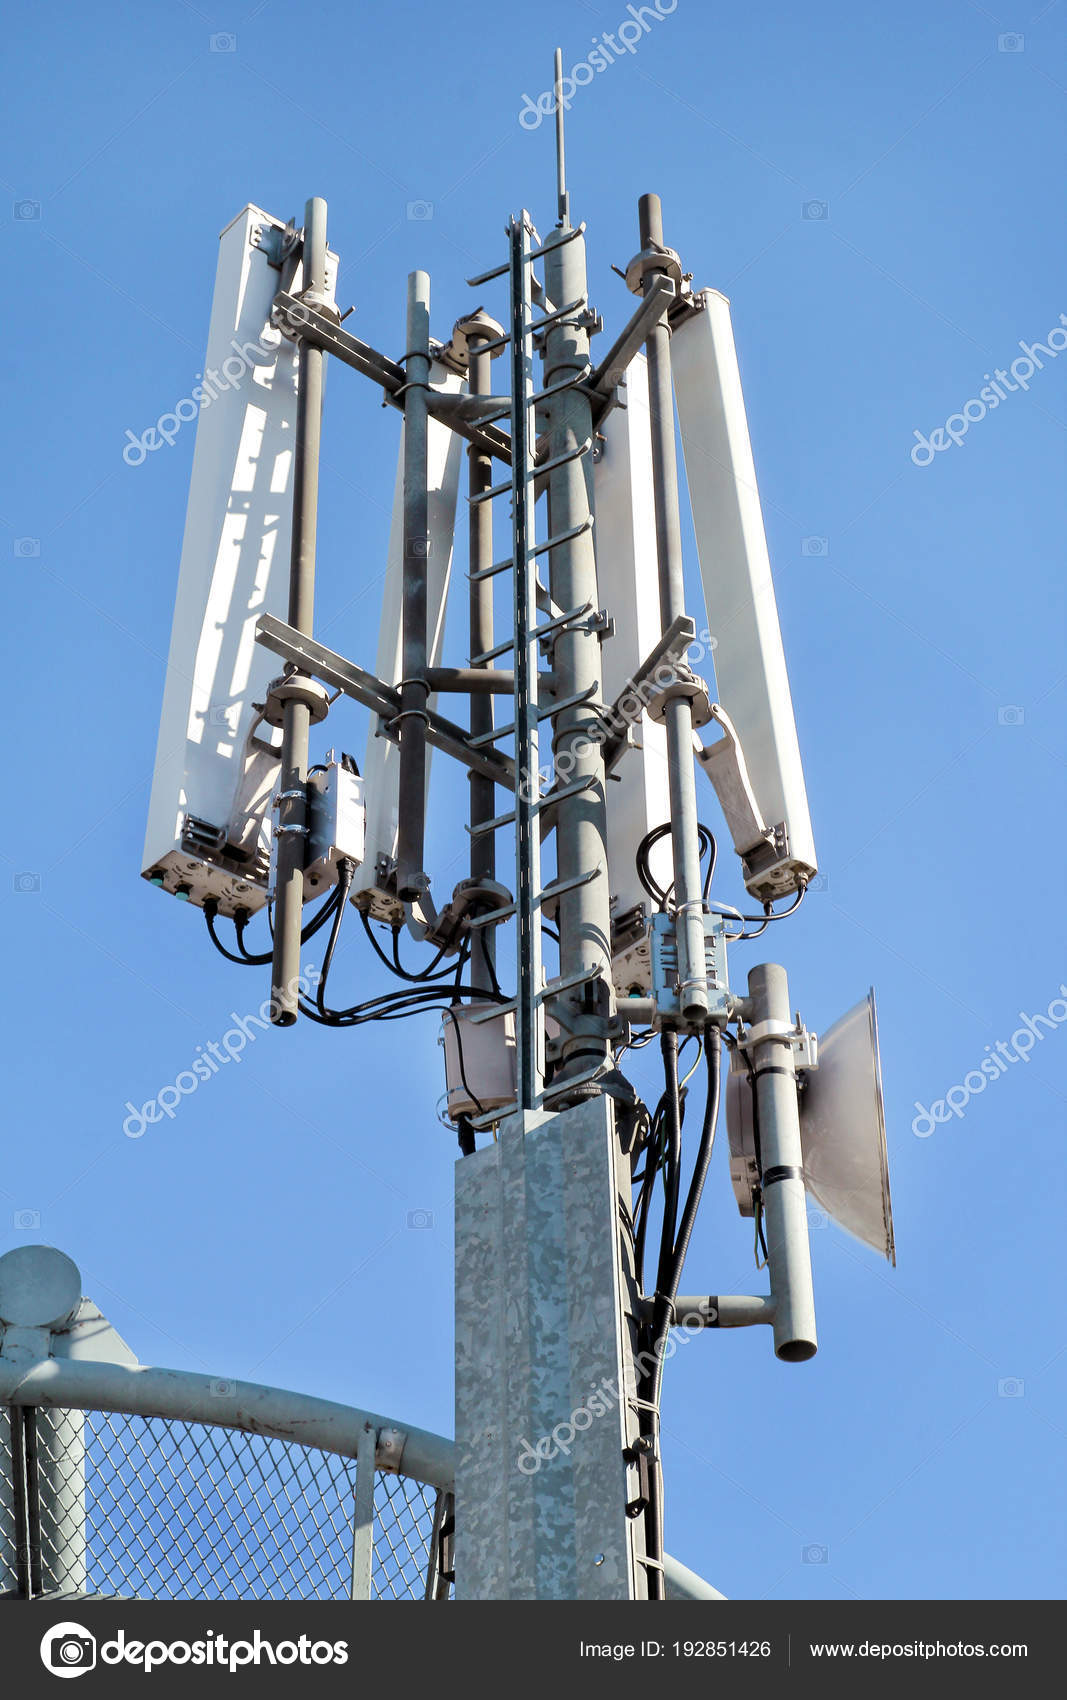 Telecommunication network repeaters  Antenna tower and repeater of